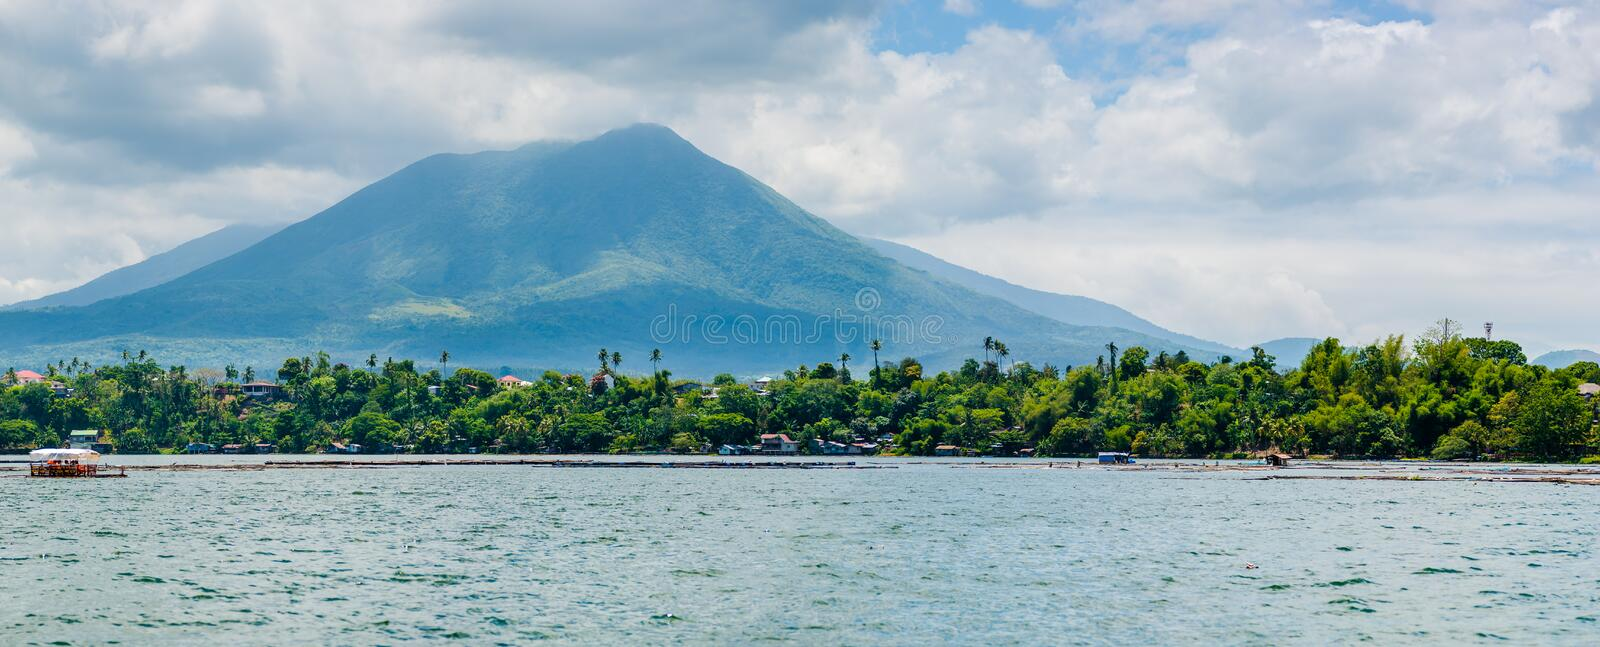 Beautiful landscape of Sampaloc Lake at San Pablo, Laguna, Philippines stock image